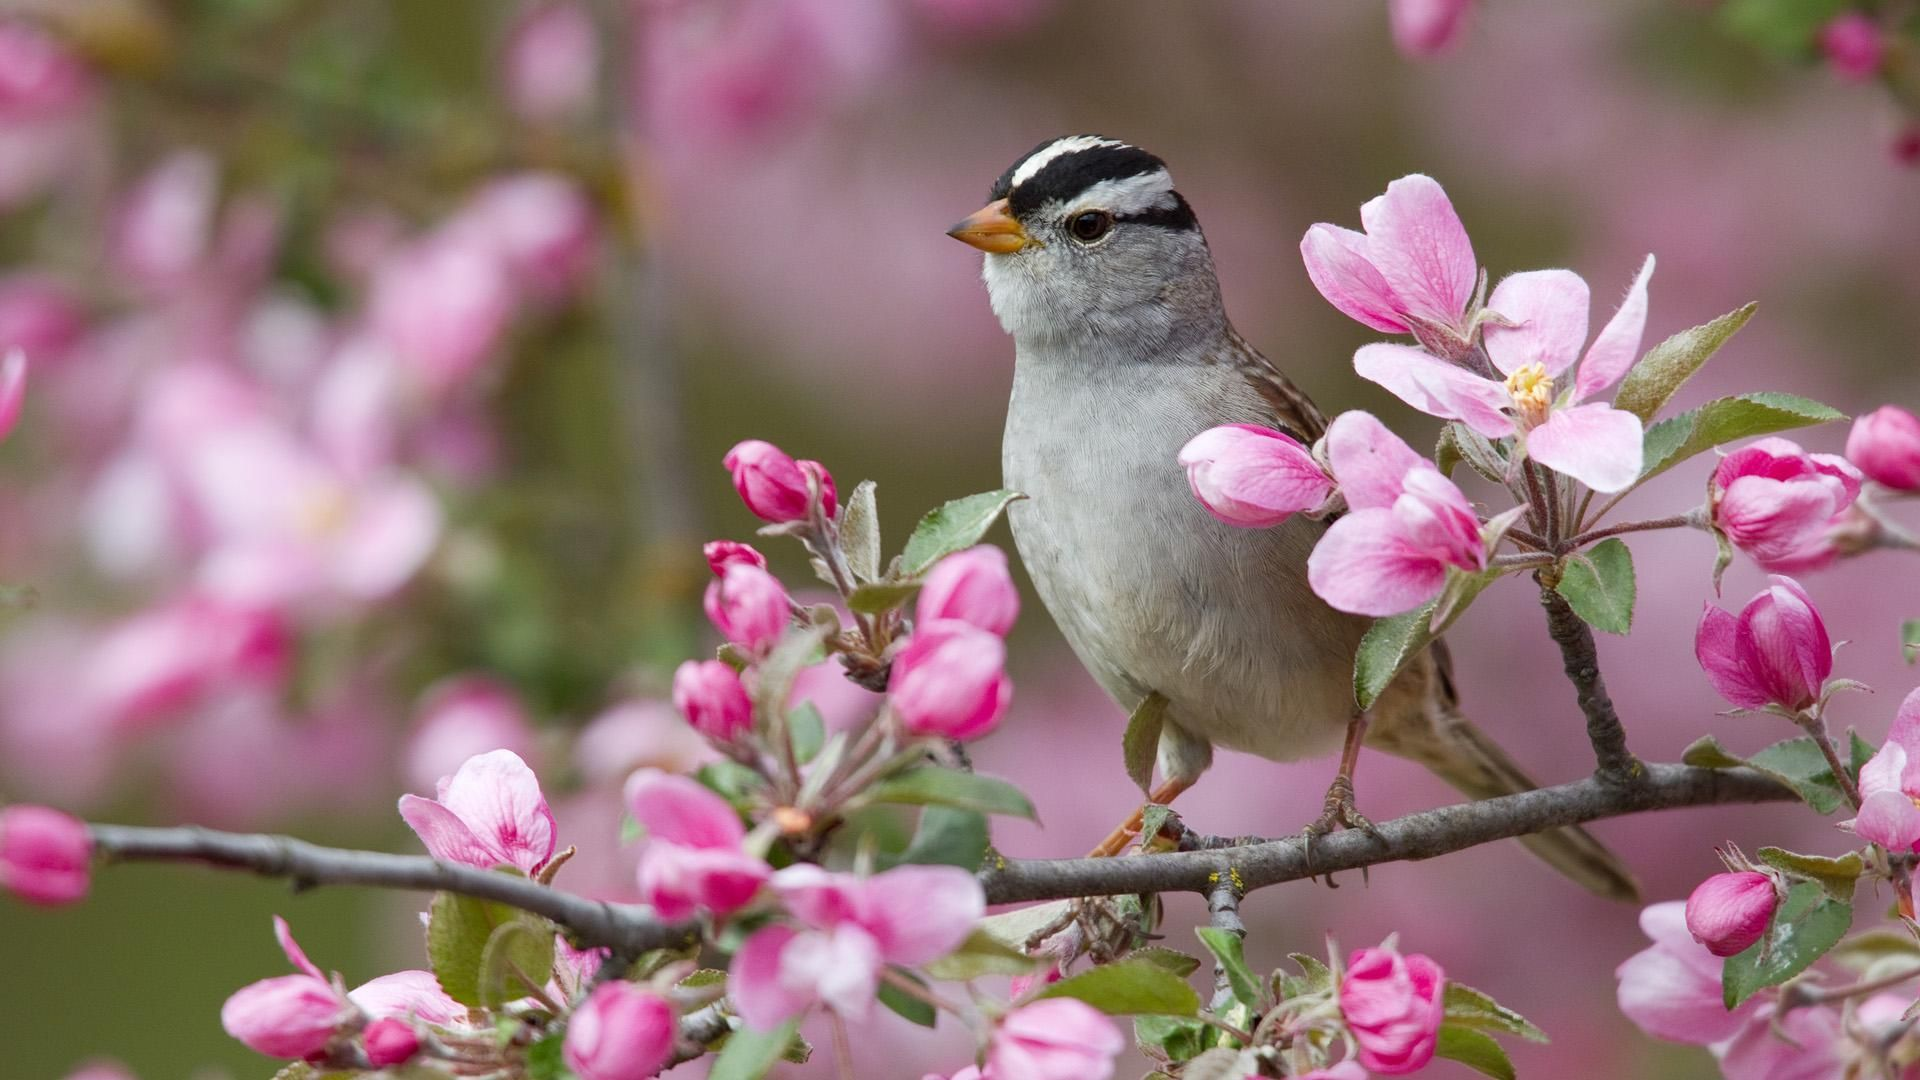 Hd Wallpaper Bird of Spring Birds Spring wallpaper Birds 1920x1080